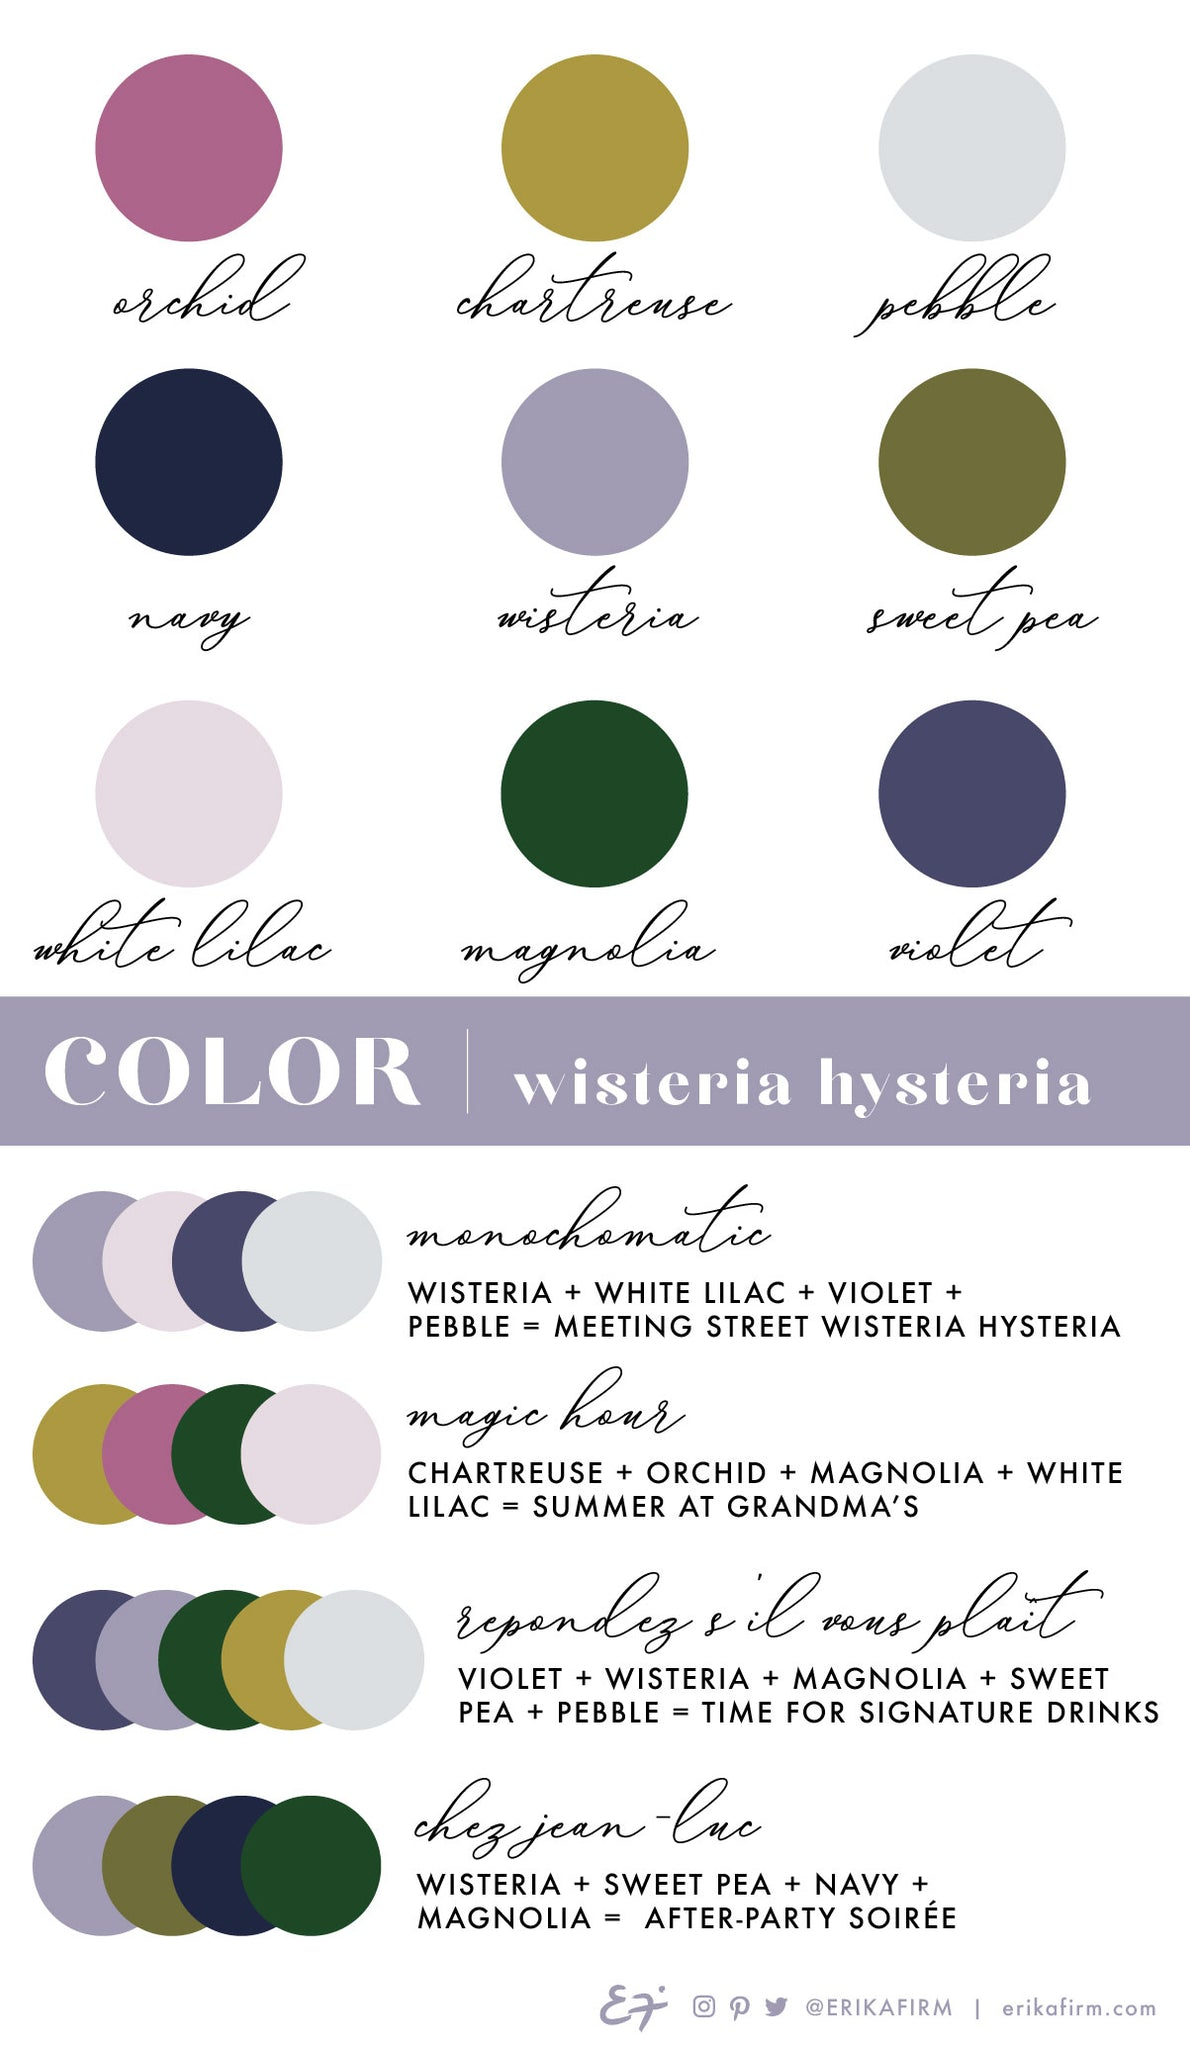 Wisteria Hysteria color palette by Erika Firm